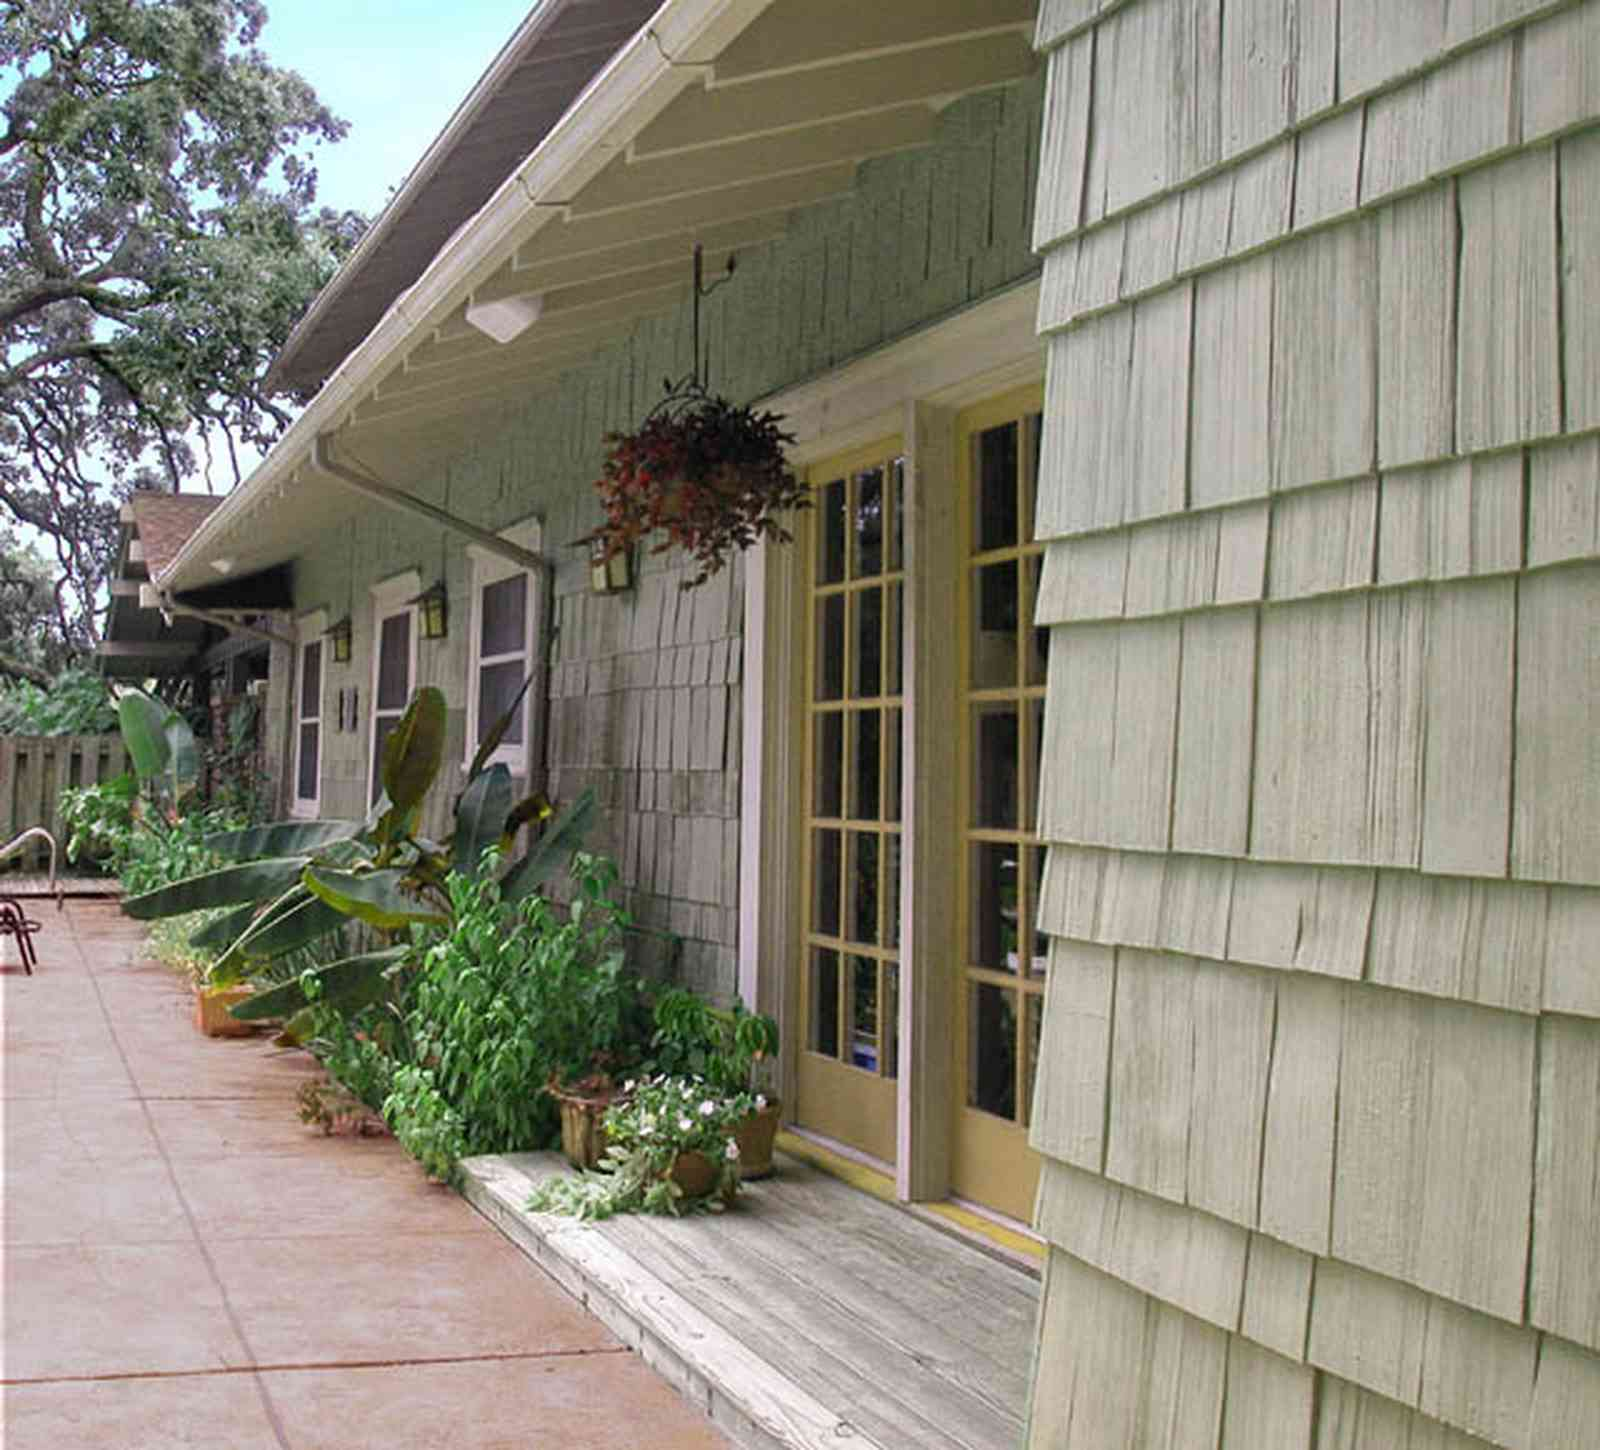 North-Hill:-284-West-Gonzales-Street_25.jpg:  shingle siding, hanging baskets, impatiens, pation door, craftsman cottage, oak tree